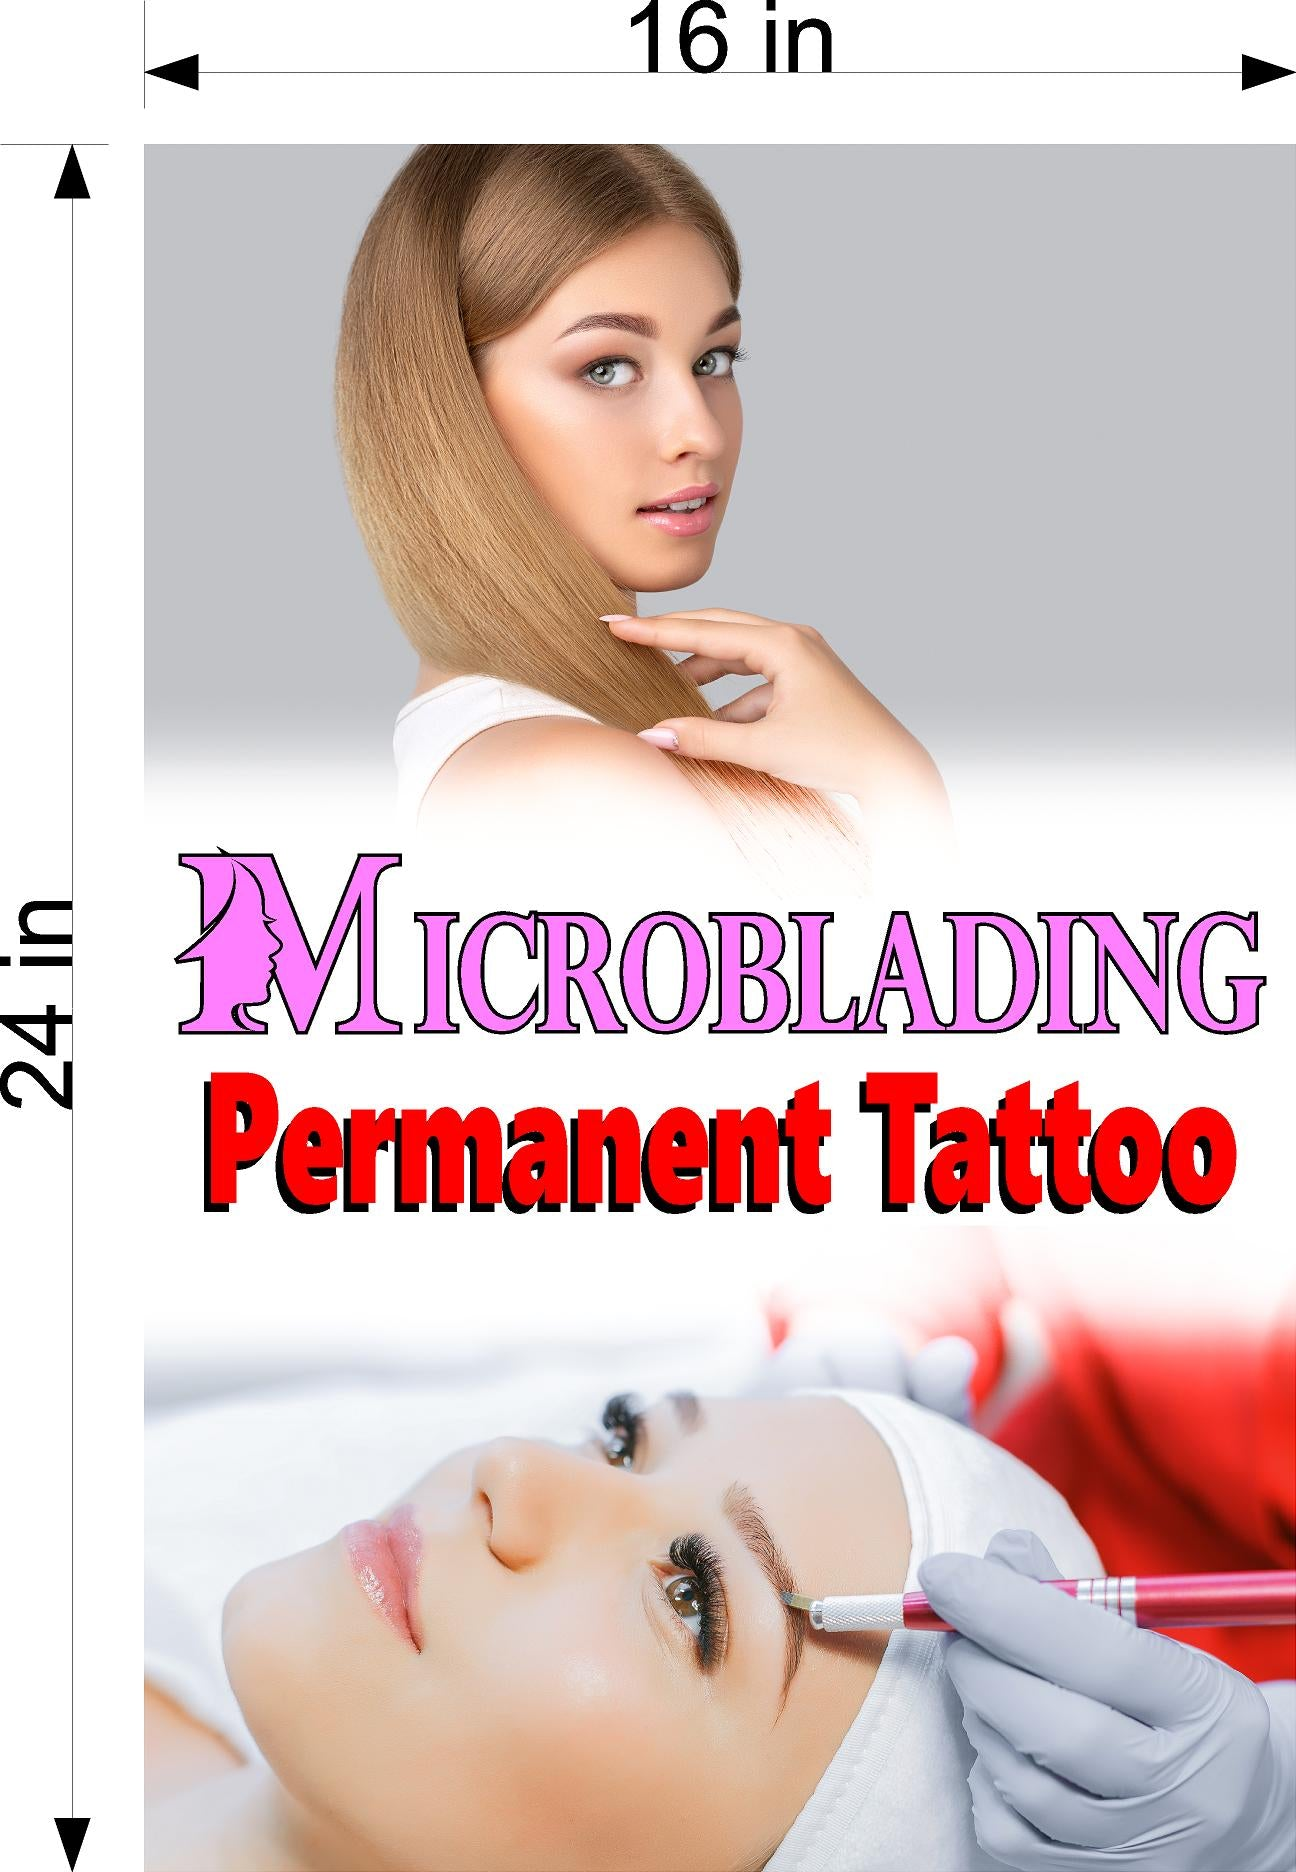 Microblading 14 Photo-Realistic Paper Poster Matte Non-Laminated Permanent Vertical